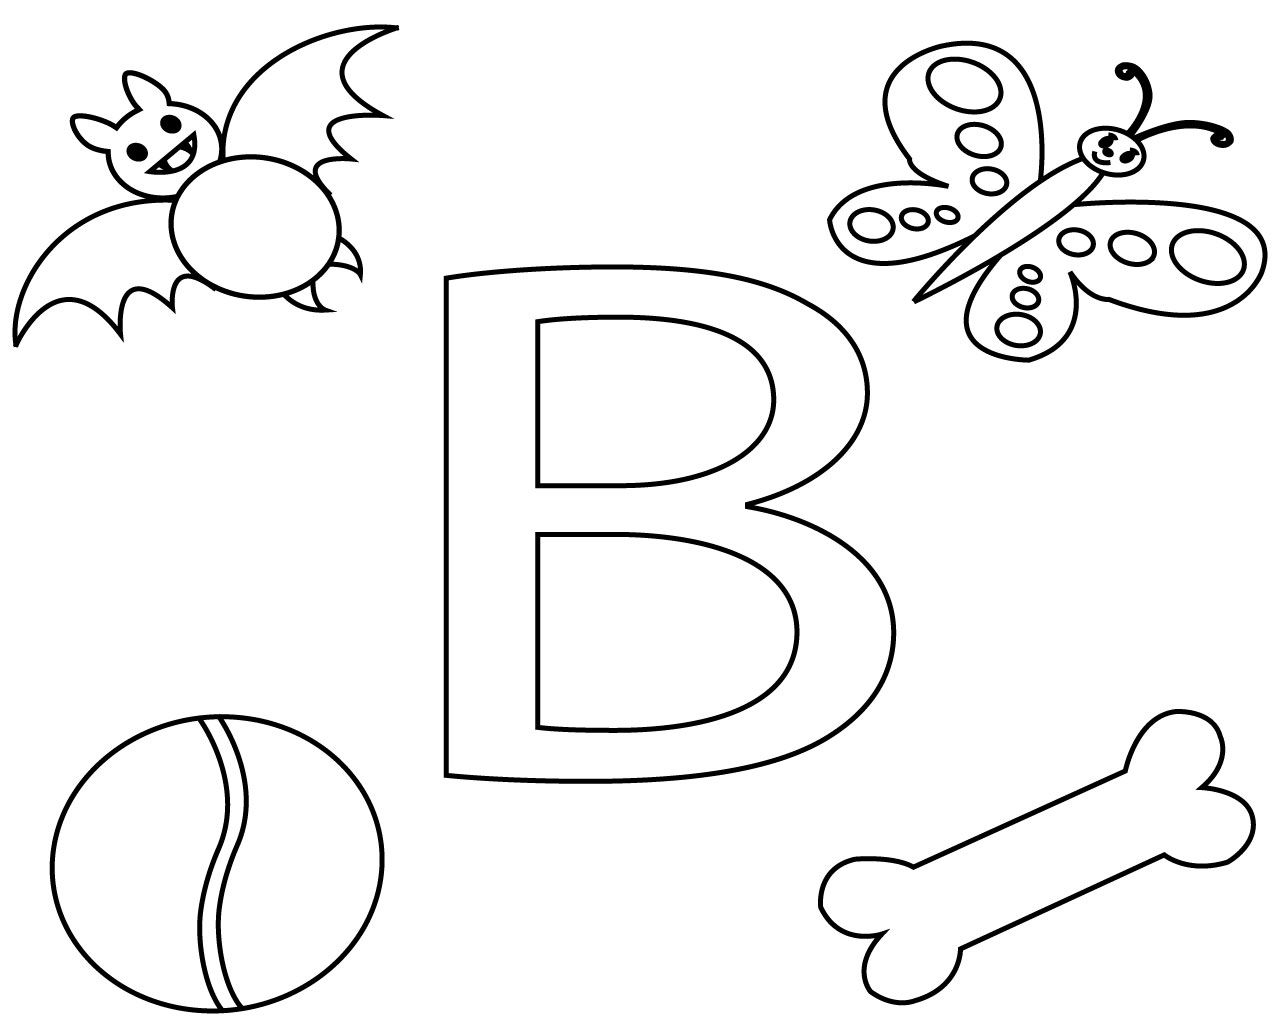 Printable Letter B Coloring Pages For Kids